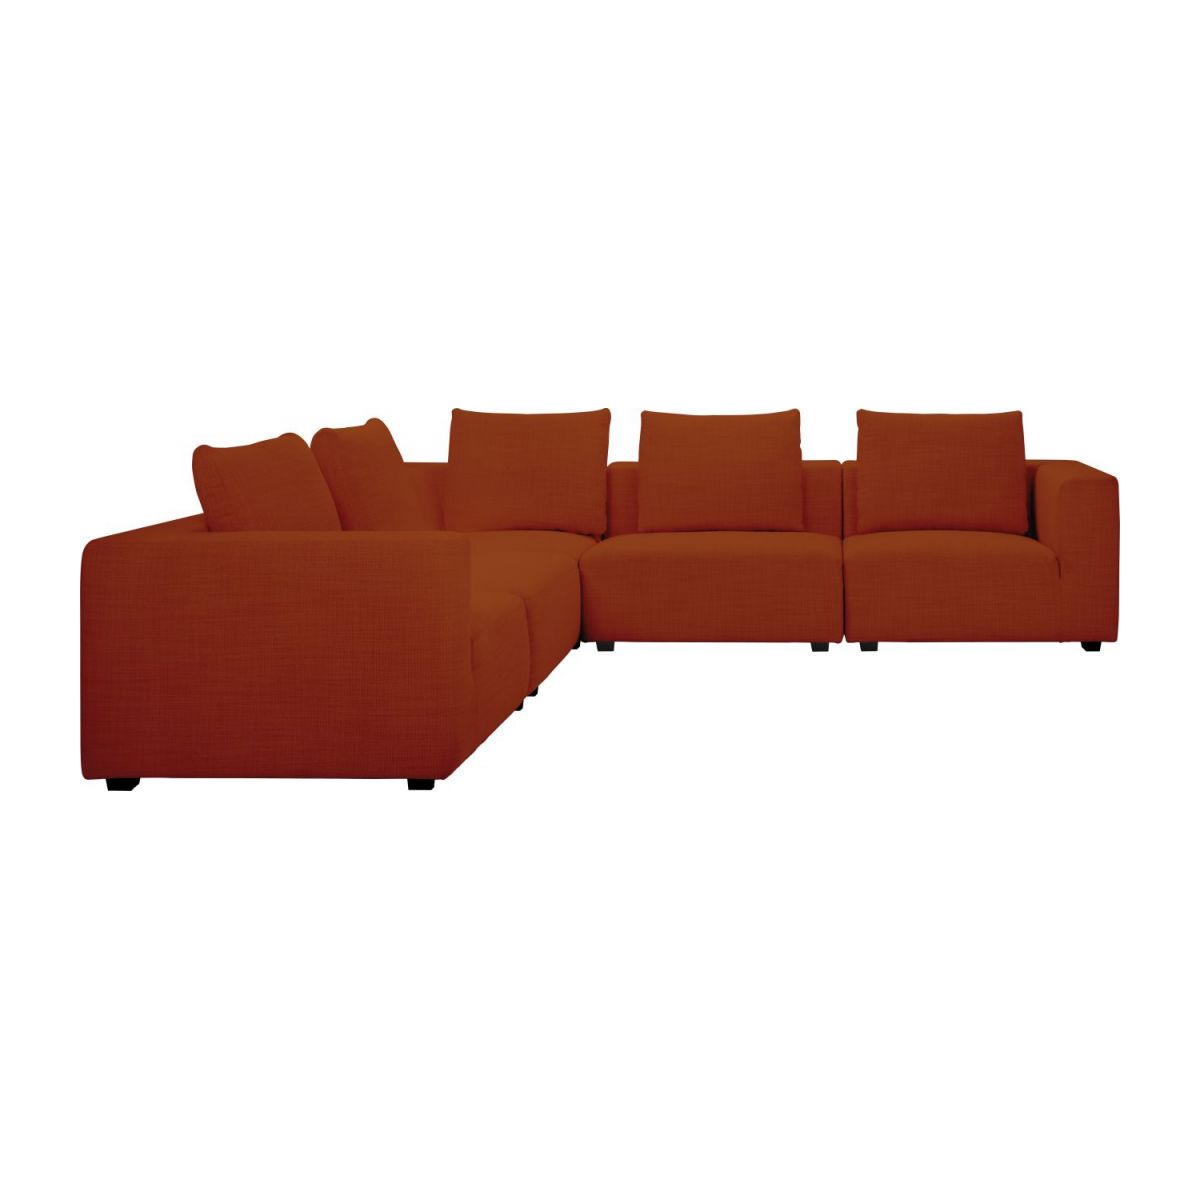 1,5 seater sofa with left armrest in Fasoli fabric, warm red rock n°10